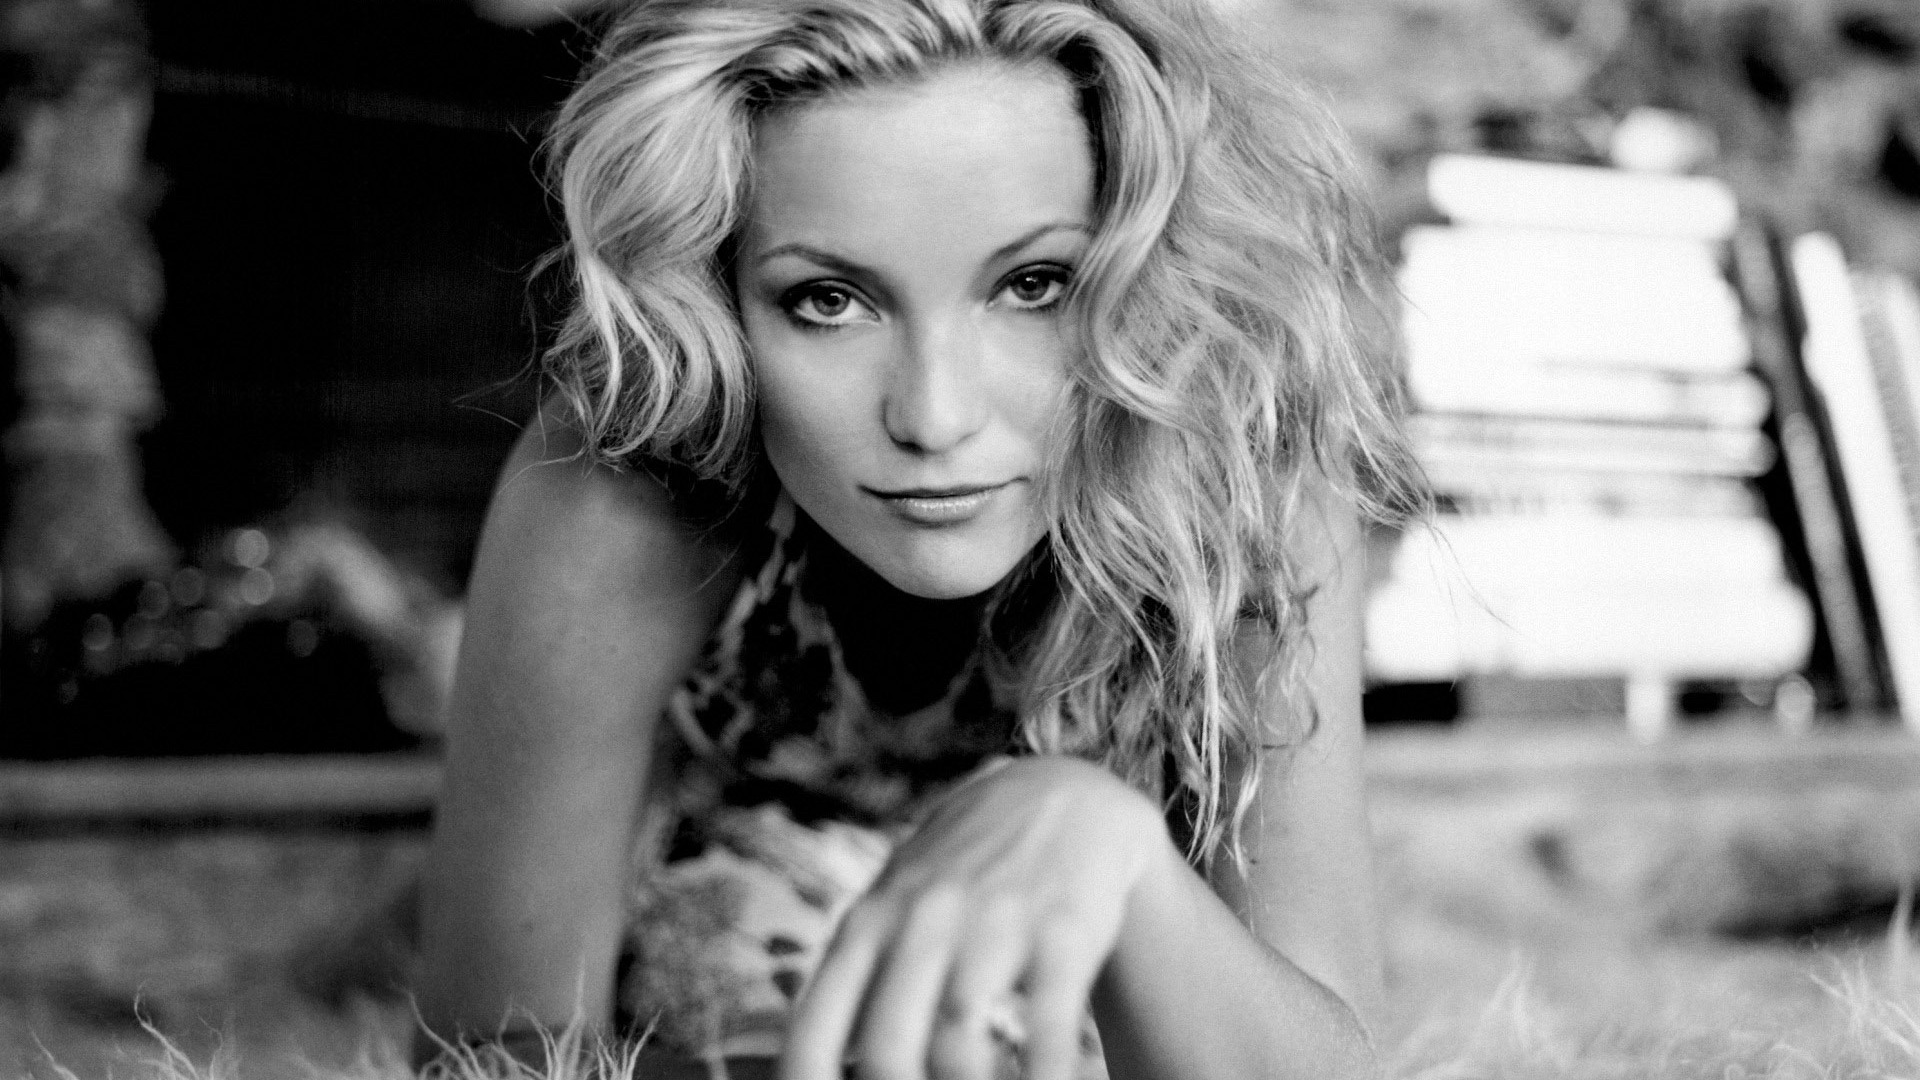 monochrome kate hudson wallpaper 54003